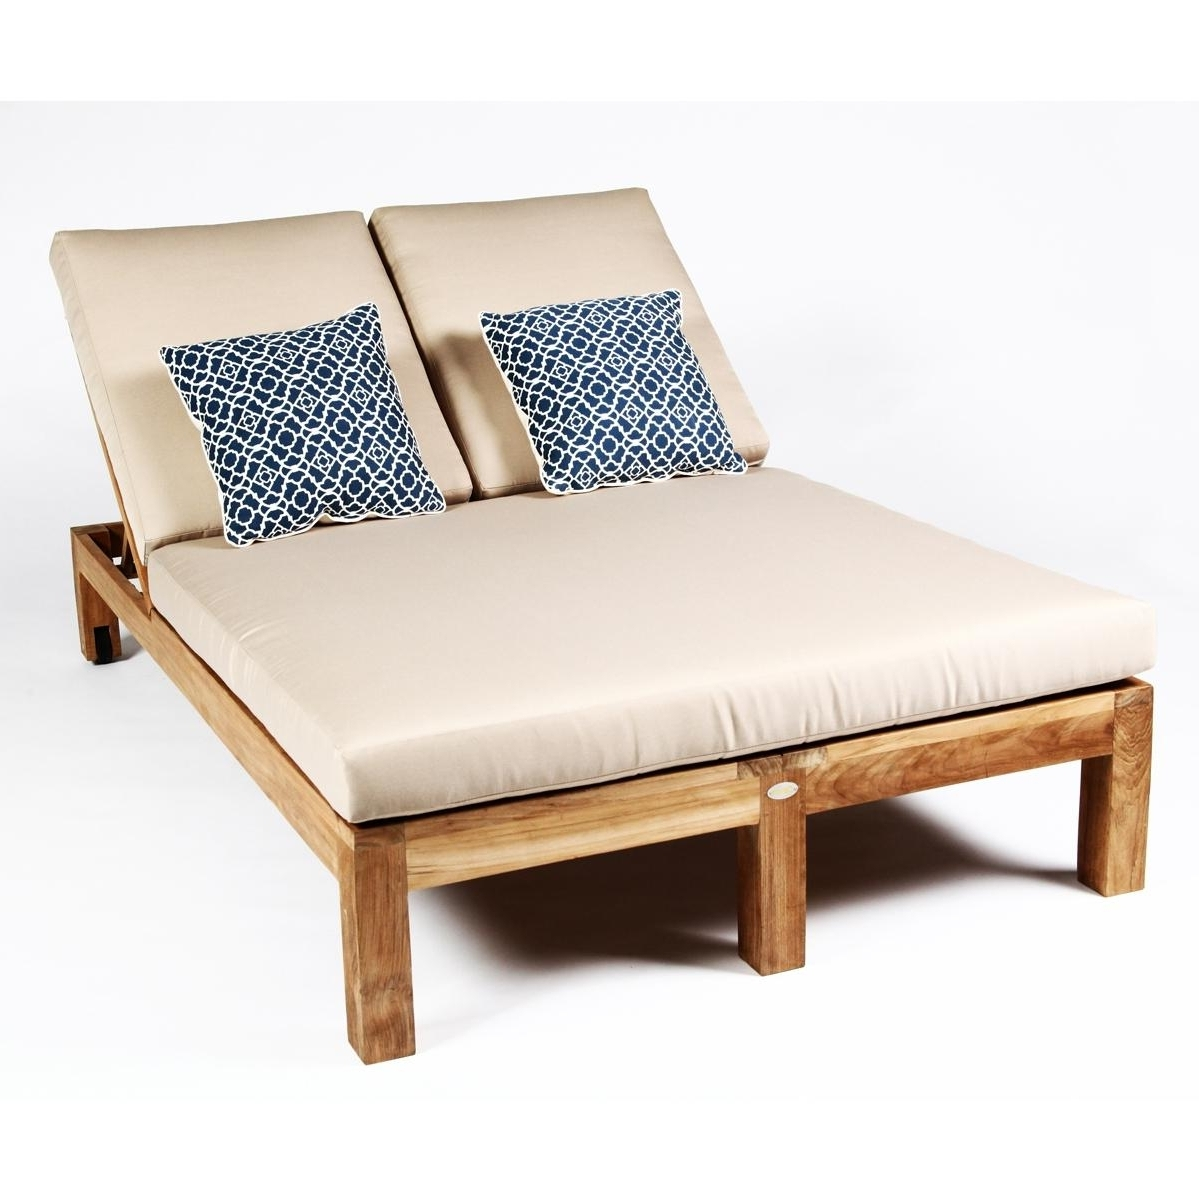 Teak Wood Double Chaise Lounge Chair • Lounge Chairs Ideas Pertaining To Most Recent Double Chaise Lounge Chairs (View 10 of 15)